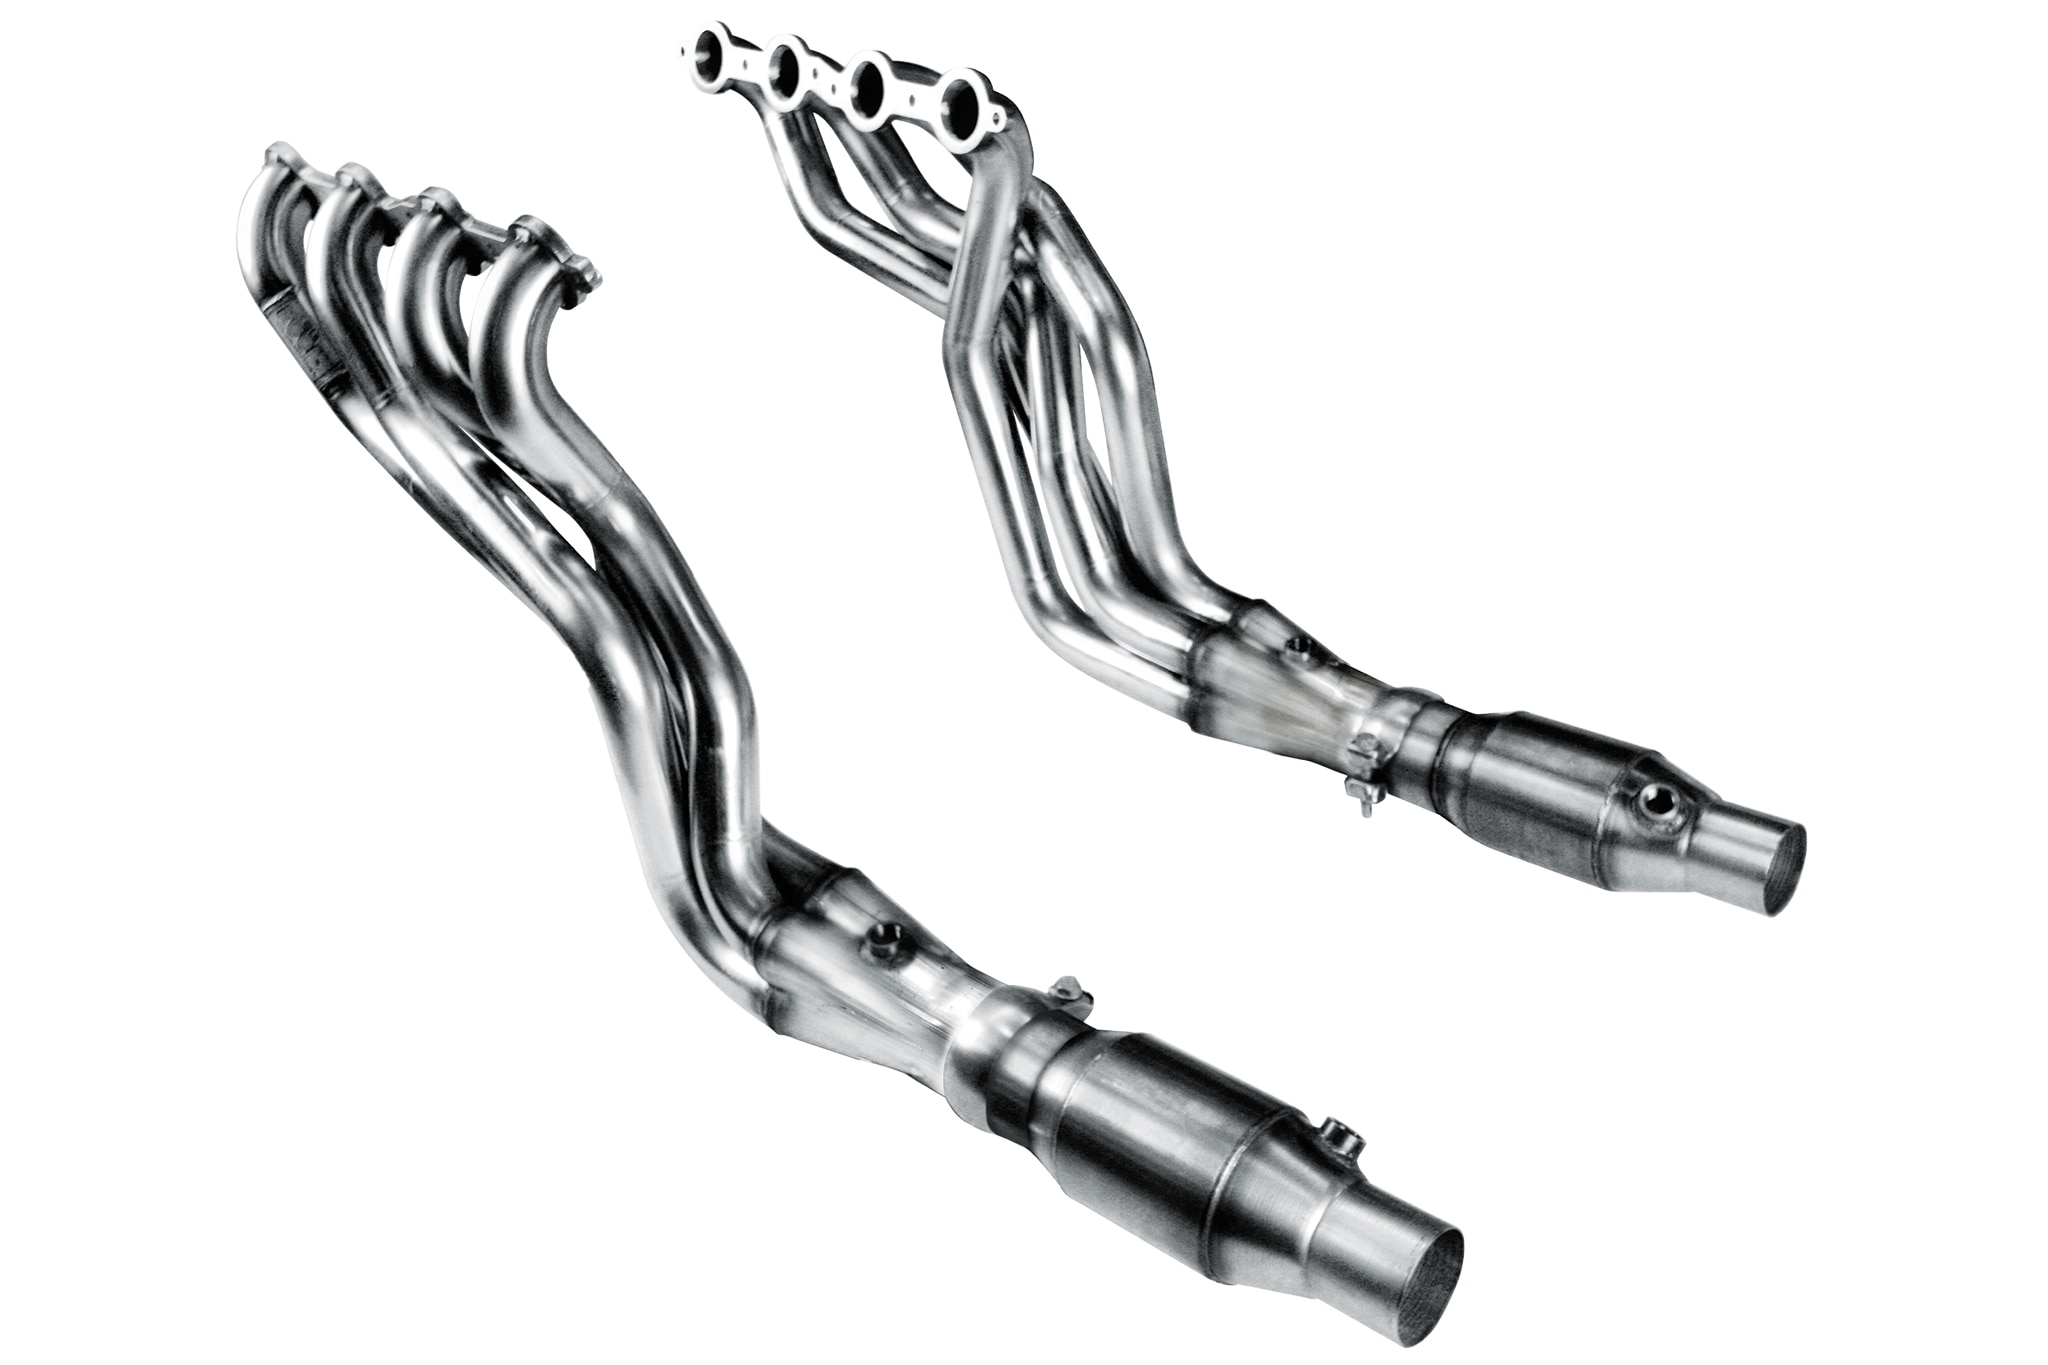 Choosing The Right Headers For Your Late Model Ls Camaro